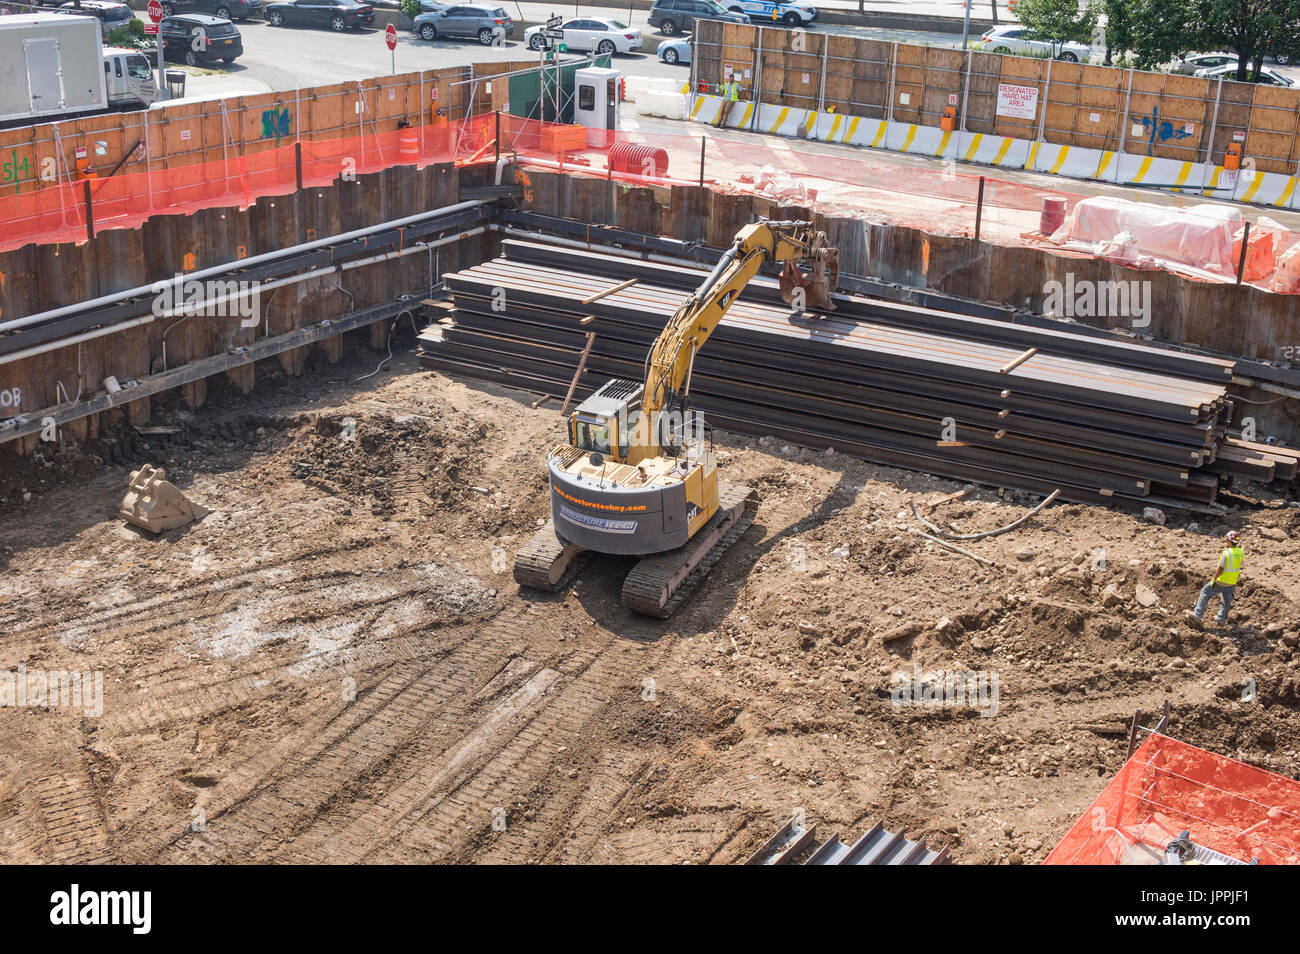 A tracked bucket excavator used as a rotating grab mover with continuous tracks and lifting crane on a construction site in New York City - Stock Image